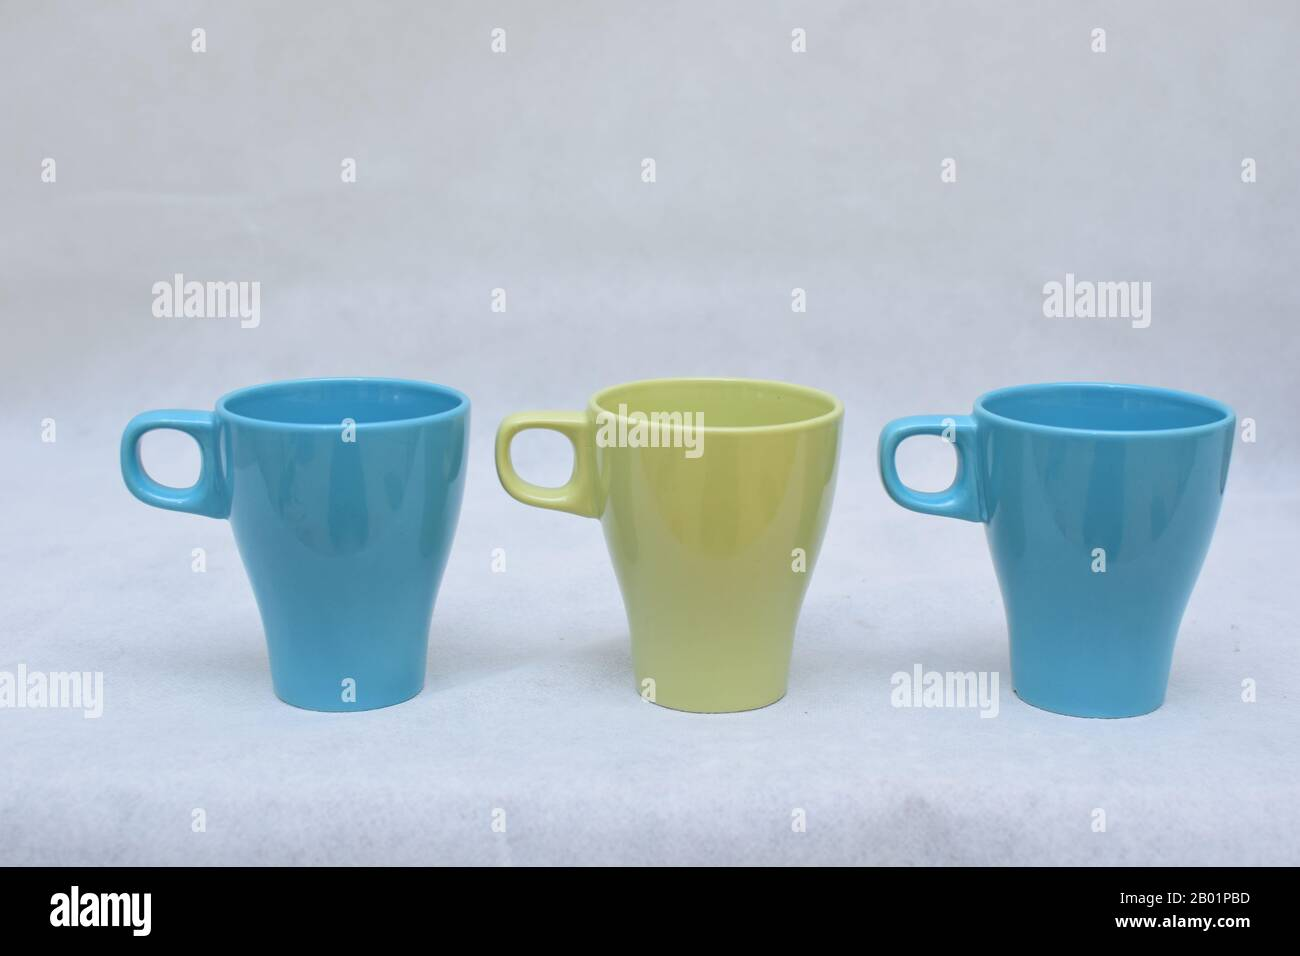 Mockup Set Of Colorful Tea Or Coffee Ceramic Mug Template For Branding Identity And Company Logo Design Drink Ware Dining Caffeine Pot Stock Photo Alamy